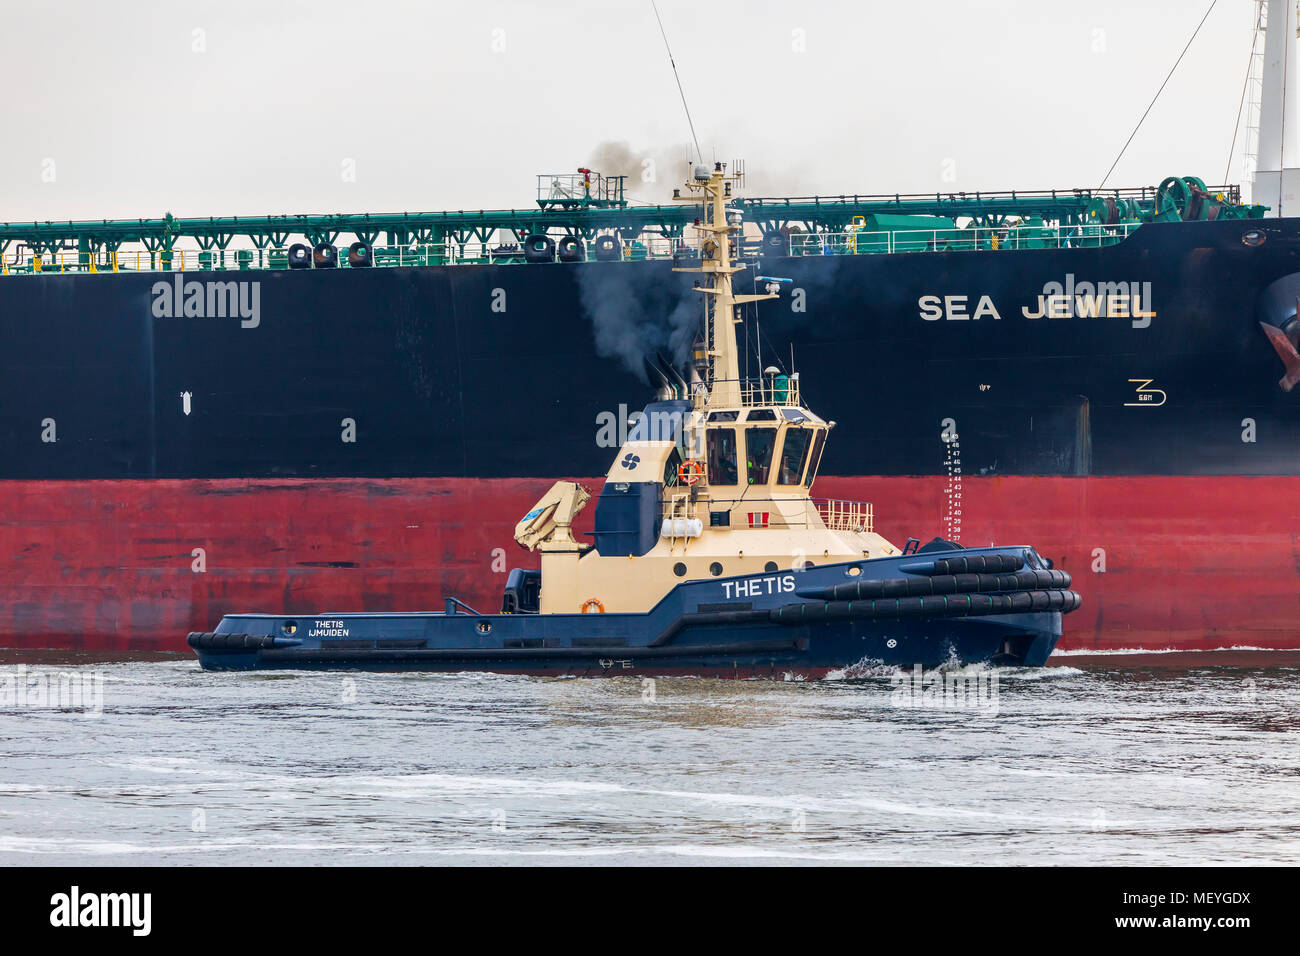 Crude oil tanker A.M.P.T.C-Sea Jewel, entering the port of Ijmuiden, in North Holland, Netherlands, tugboat, - Stock Image